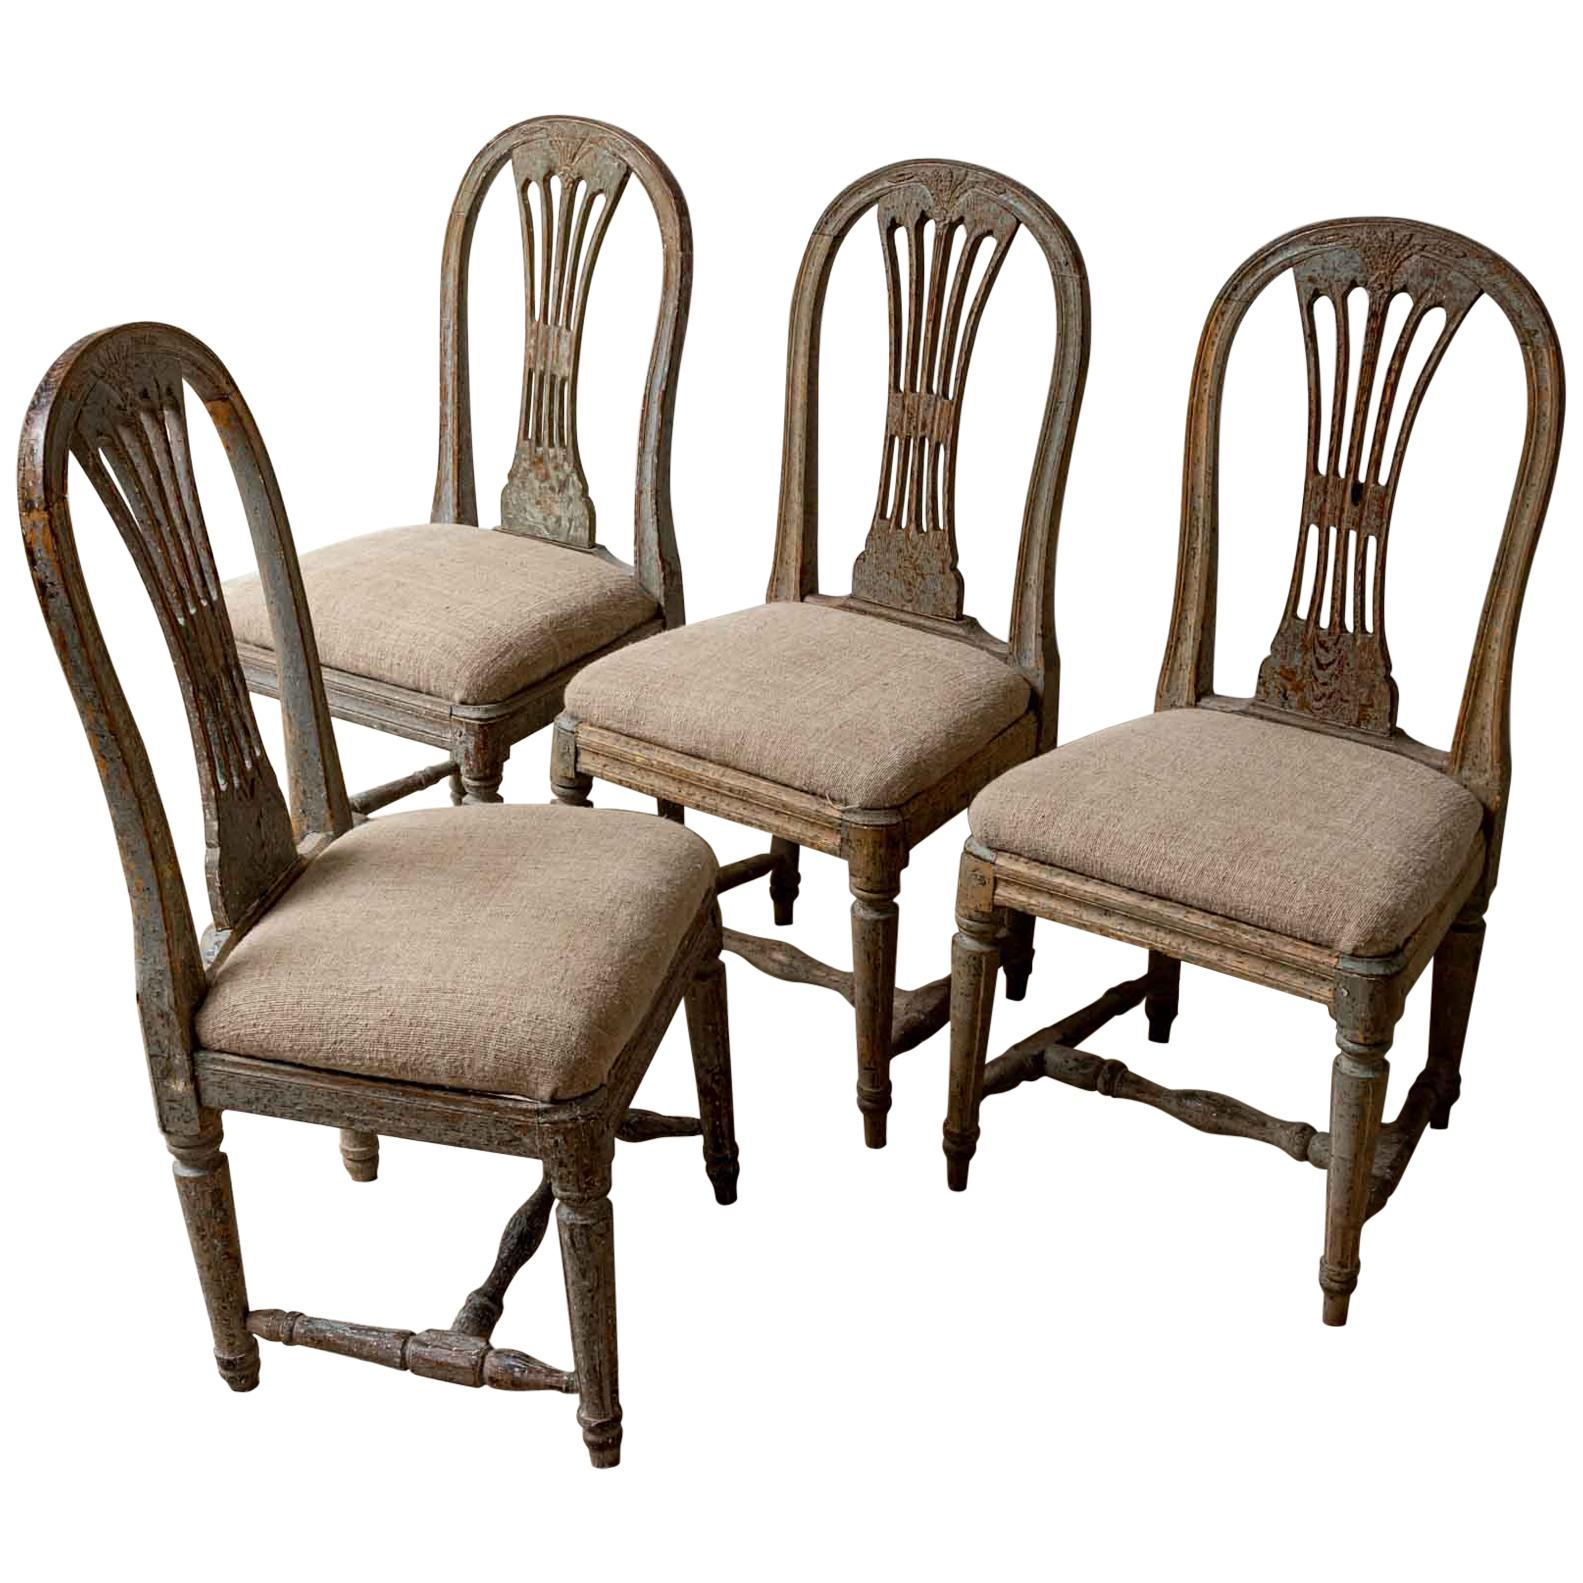 Set of Four 19th Century Hand Painted Swedish Wheat Sheaf Dining Chairs